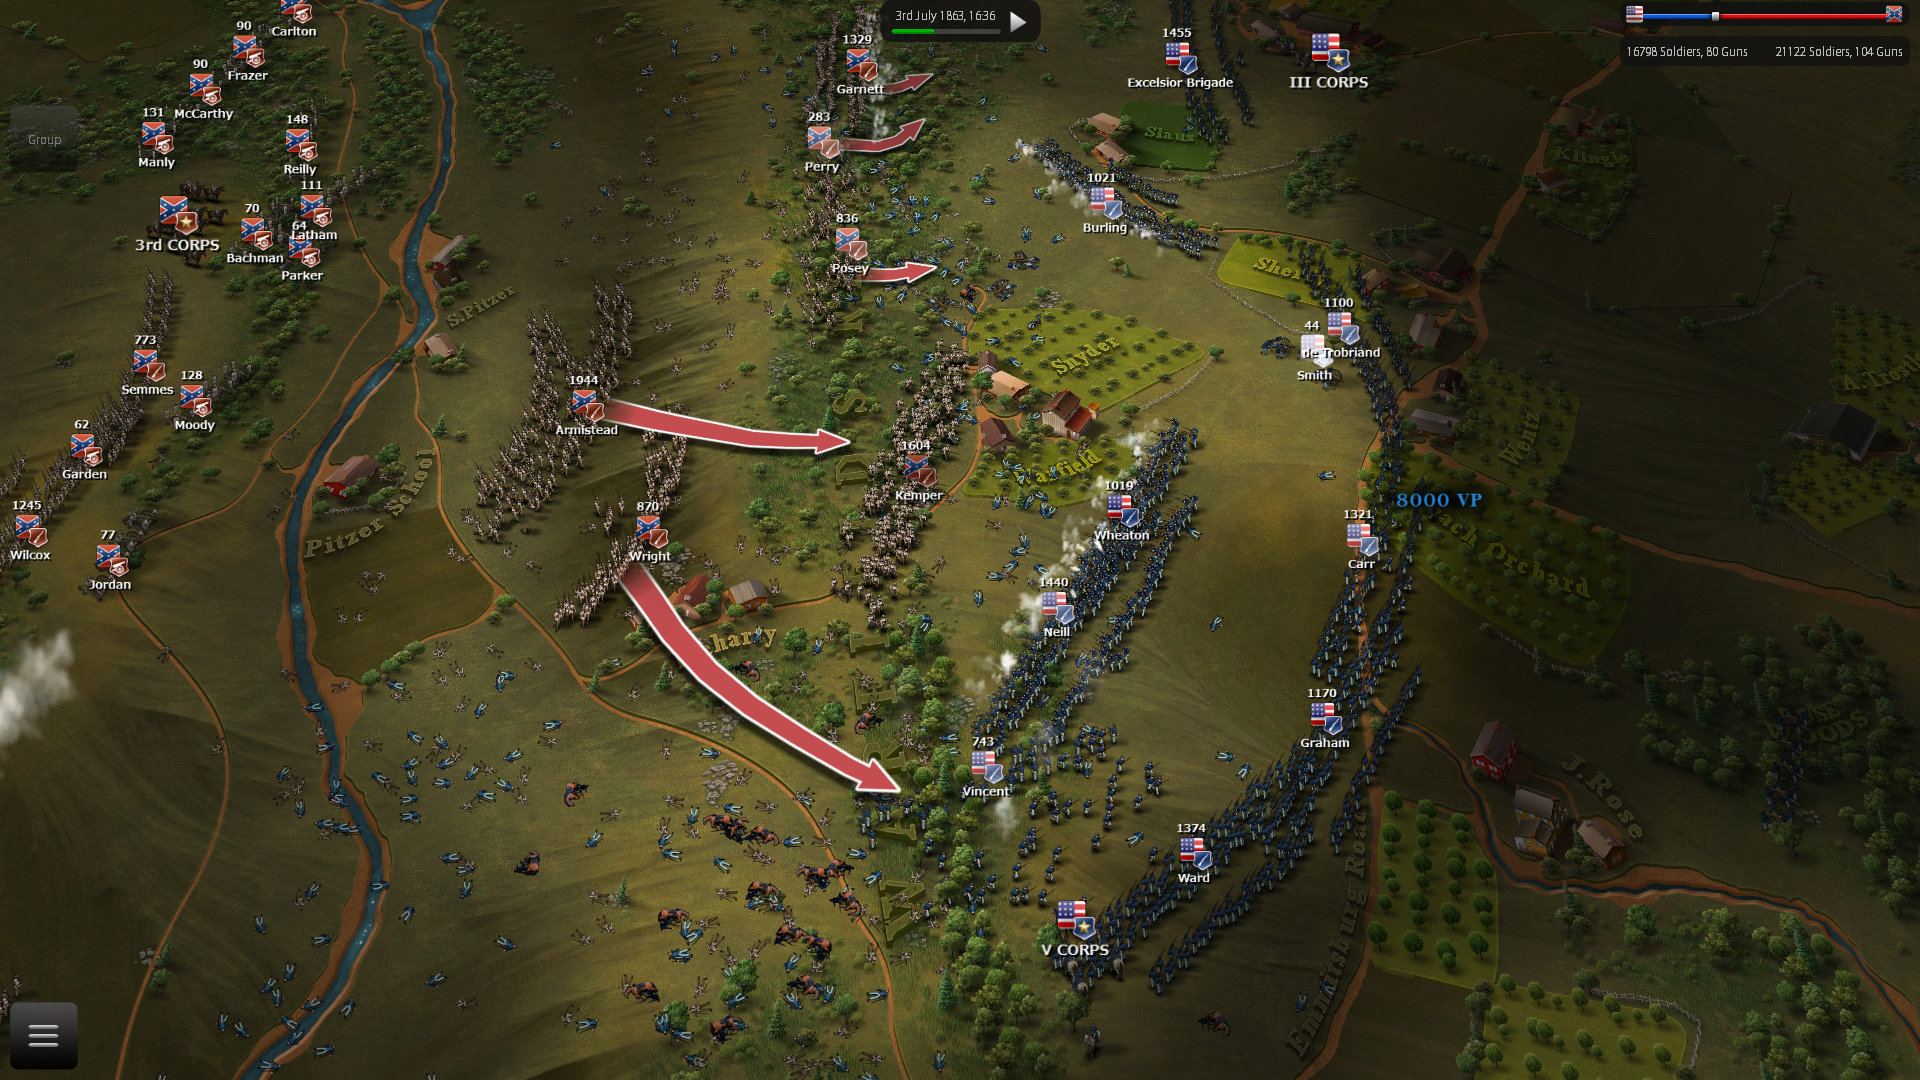 """After a thunderous charge, the confederate player takes ground but the AI is now very stubborn in defense, making lines to protect objectives, like the """"defensive"""" AI personality of the image."""